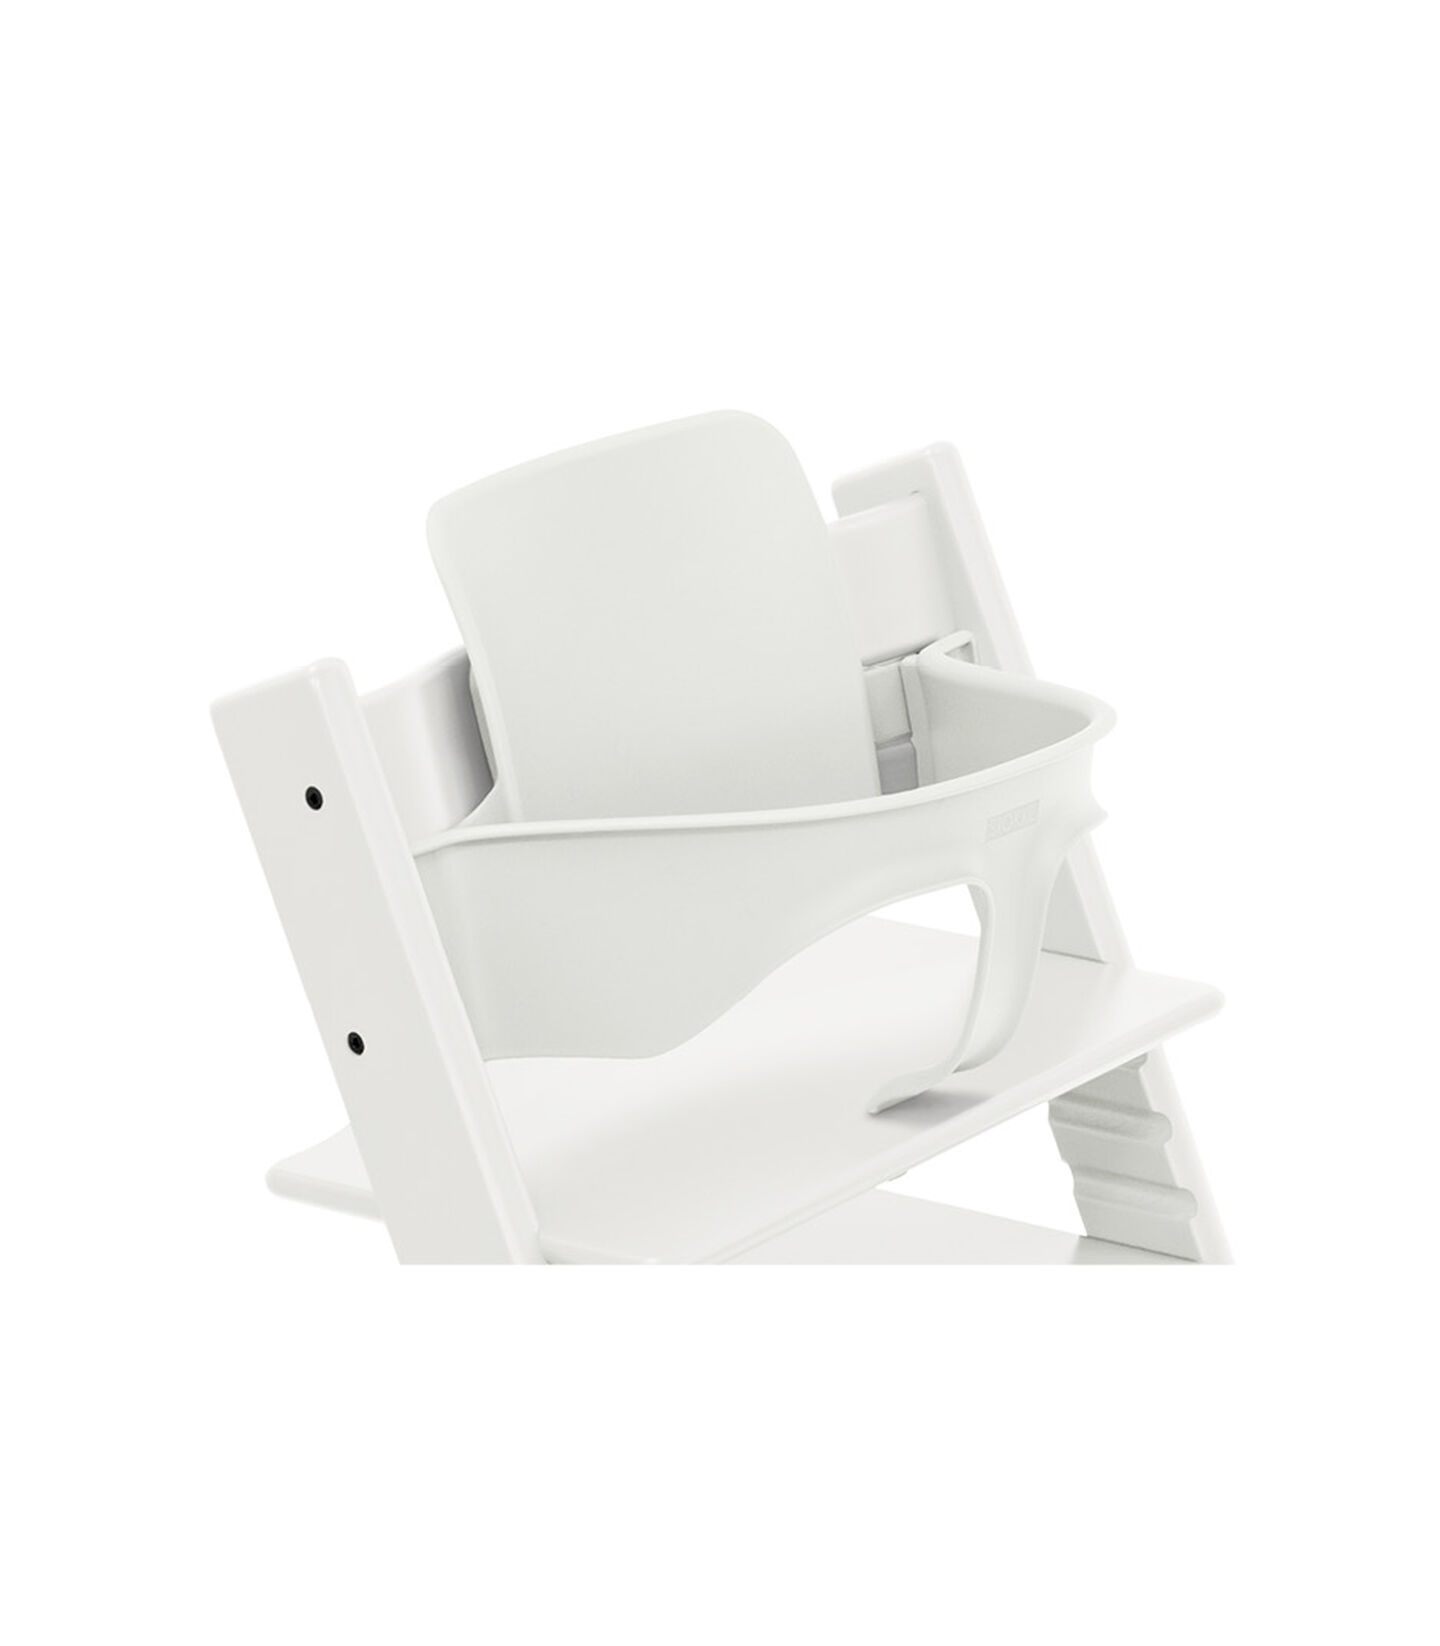 Tripp Trapp® Baby Set White, White, mainview